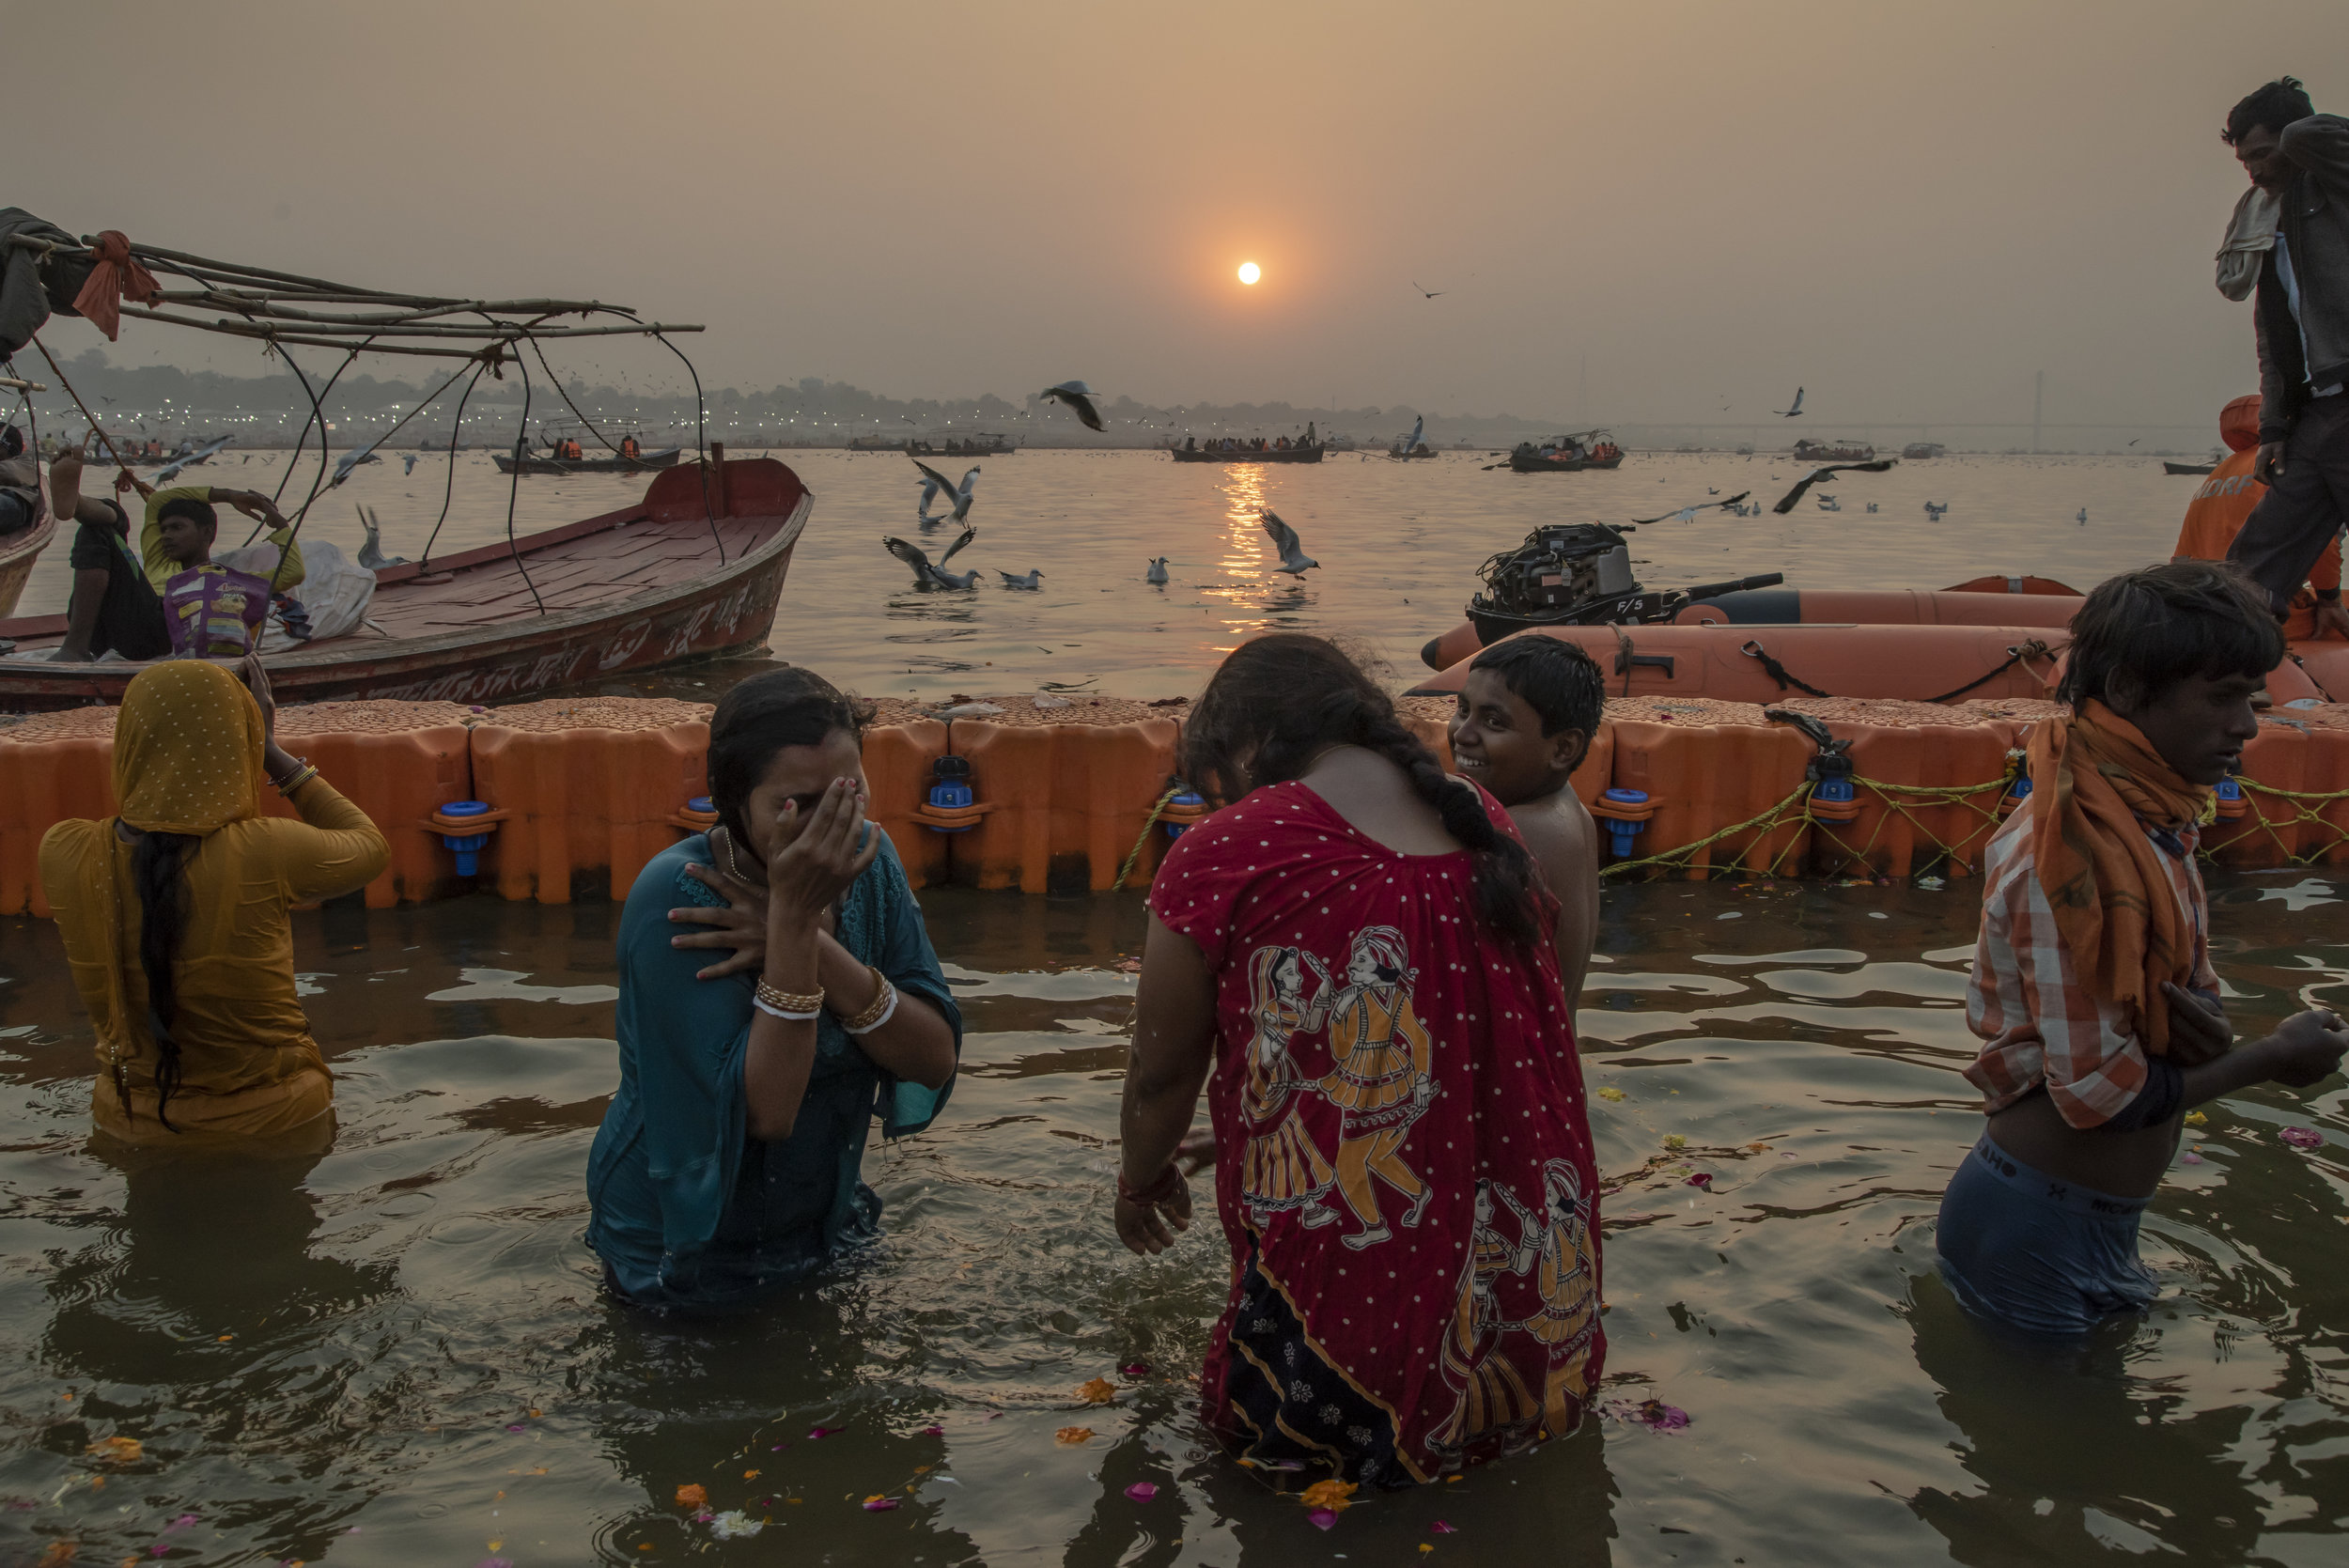 Three young women bathe in the Ganges at sunset.